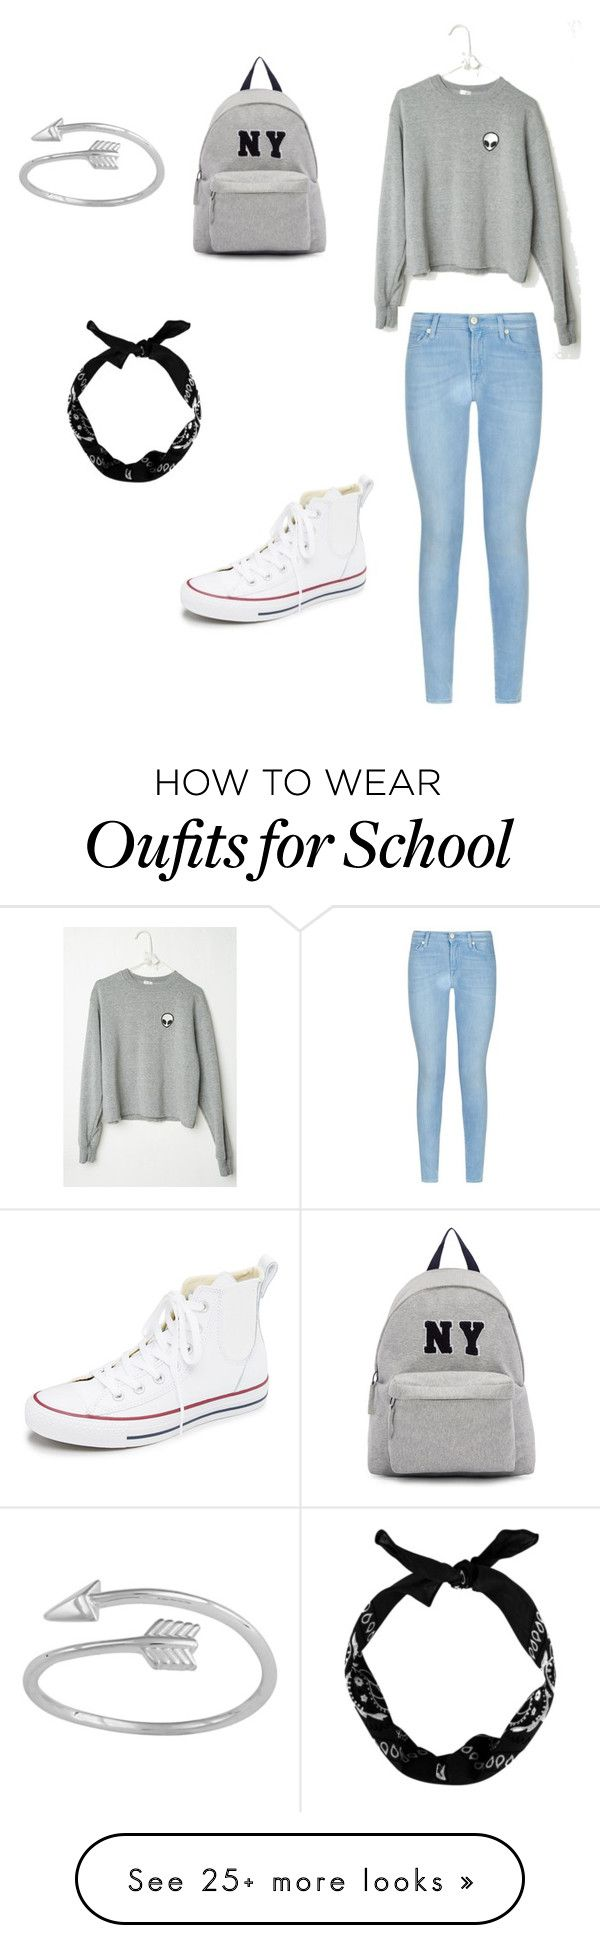 Grey school look by dianareyes667 on Polyvore featuring Converse, 7 For All Mankind, Joshuas, womens clothing, womens fashion, women, female, woman, misses and juniors Clothing, Shoes & Jewelry - Women - Shoes - women's shoes - http://amzn.to/2jttl6P